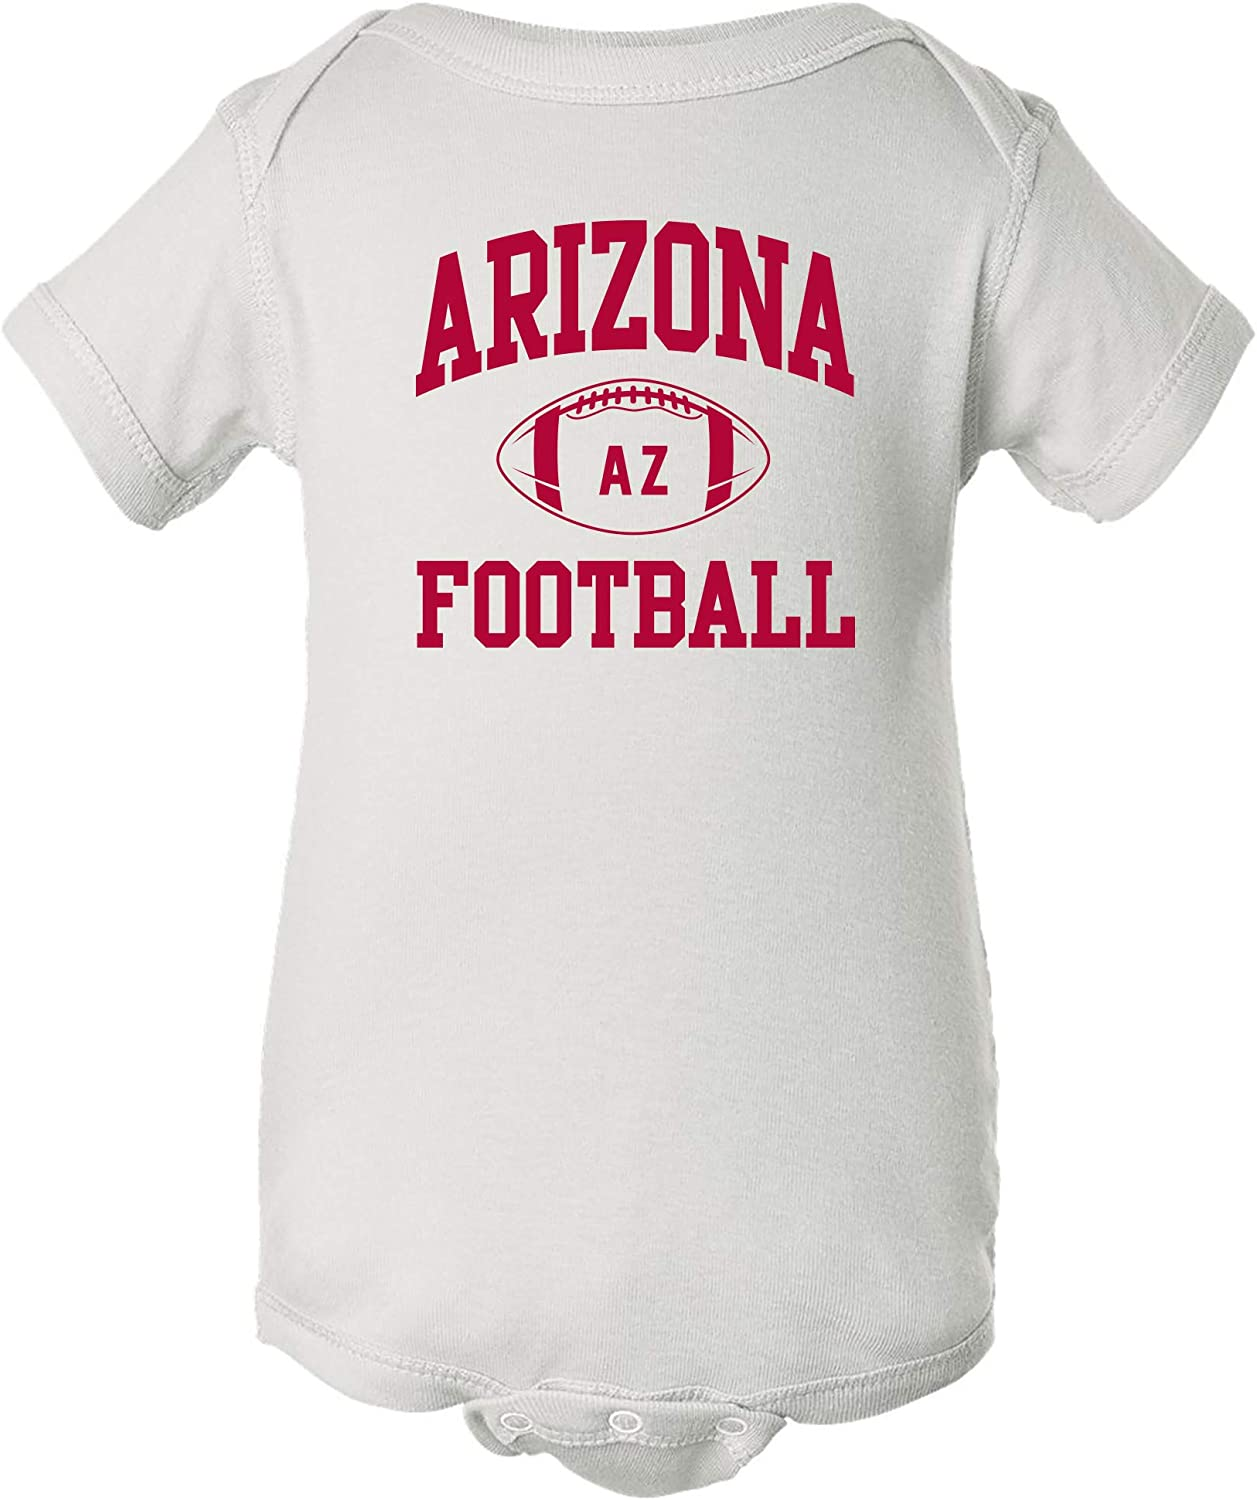 City Classic Football Arch Infant Creeper Bodysuit